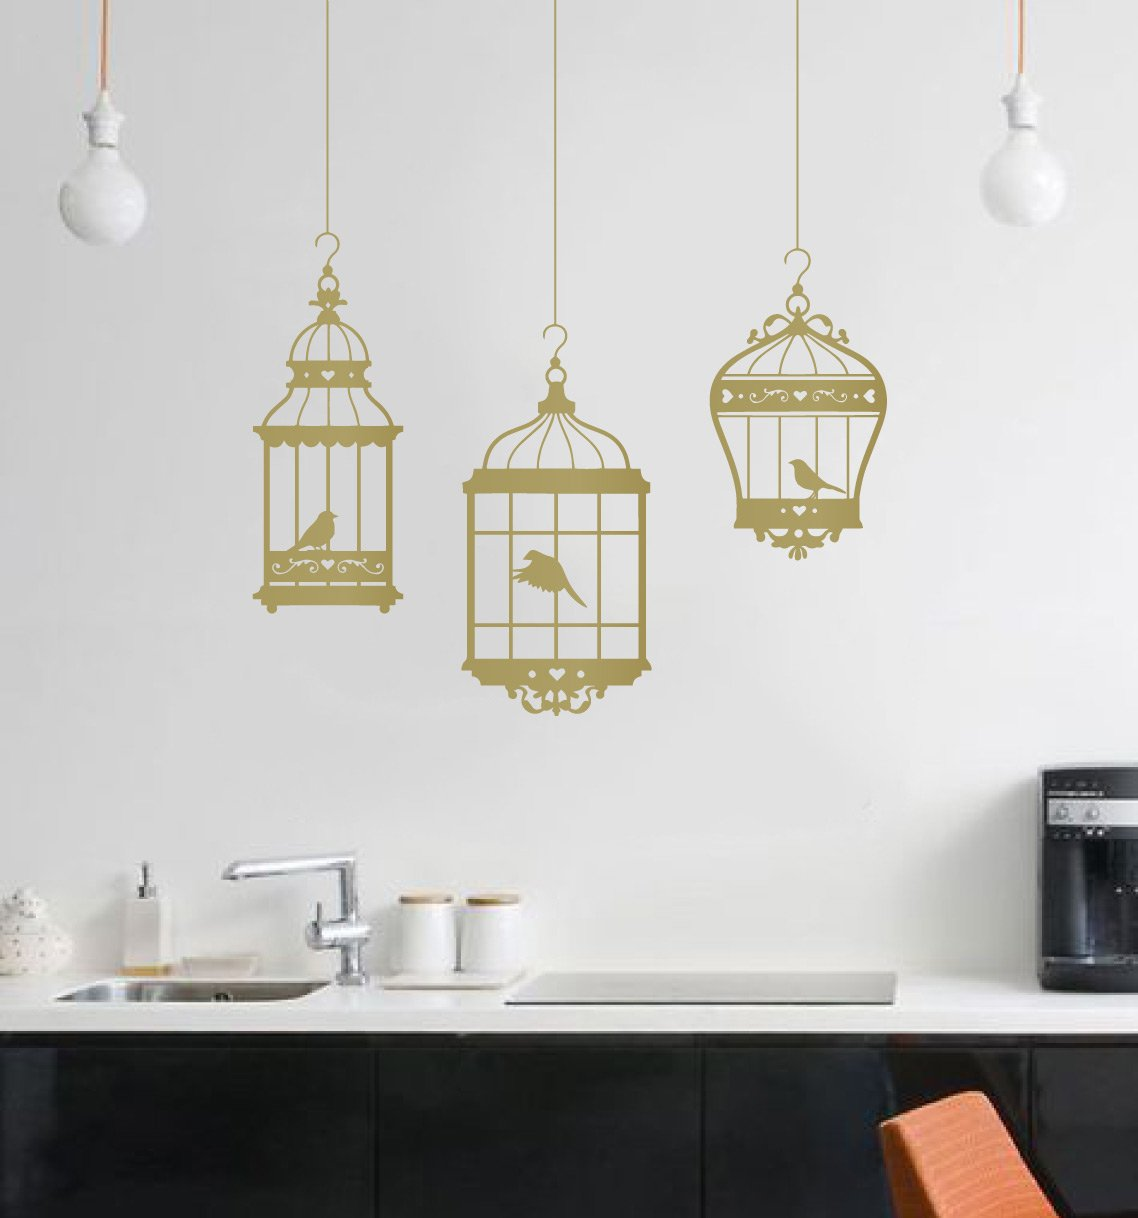 Amazon com pretty birds in 3 hanging birdcages vinyl wall decal stickers removable decorative graphic transfers gold 48x37 inches home kitchen